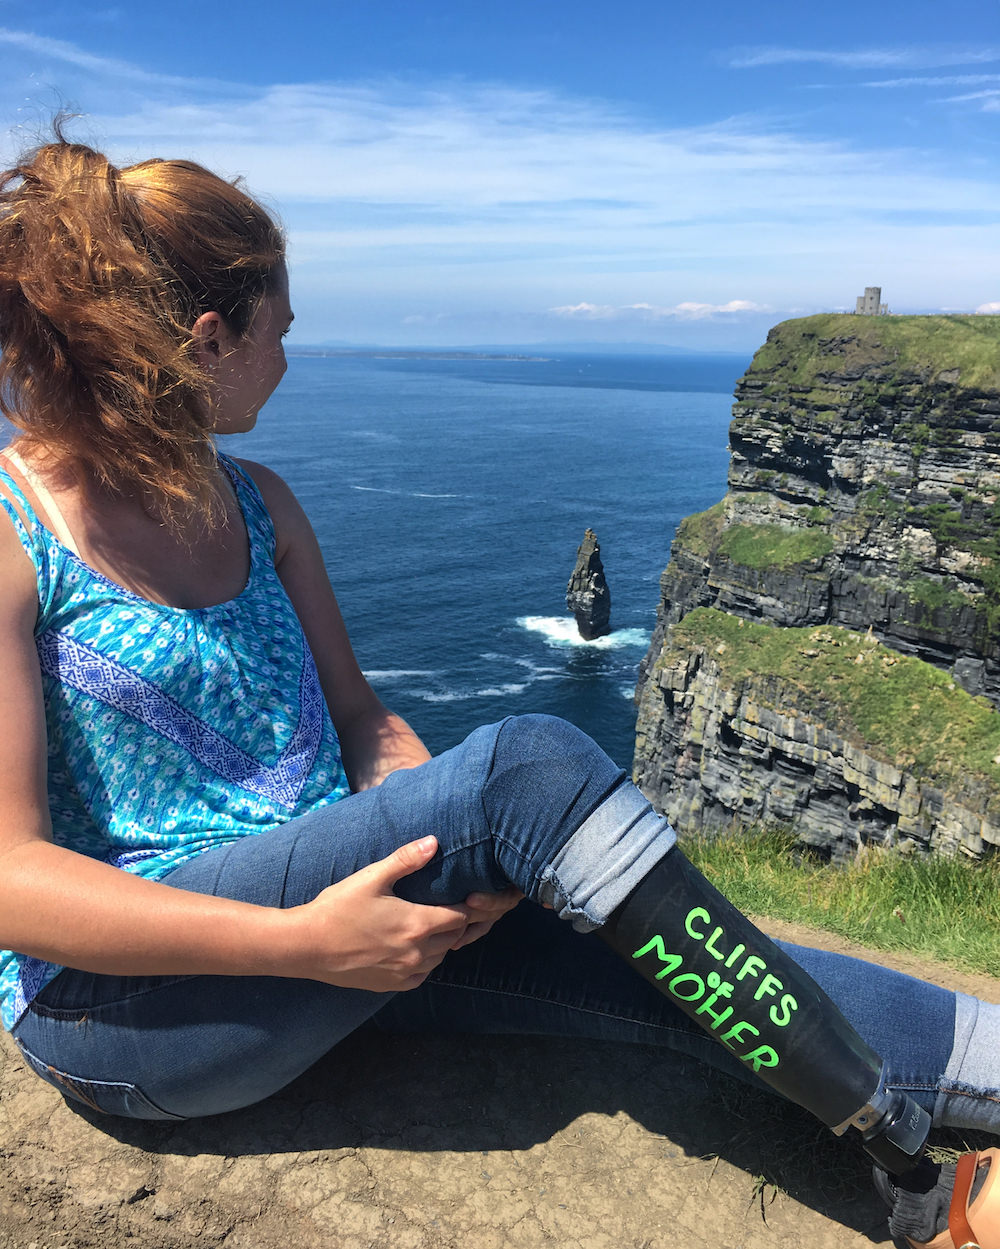 Devon admiring the Cliffs of Moher.